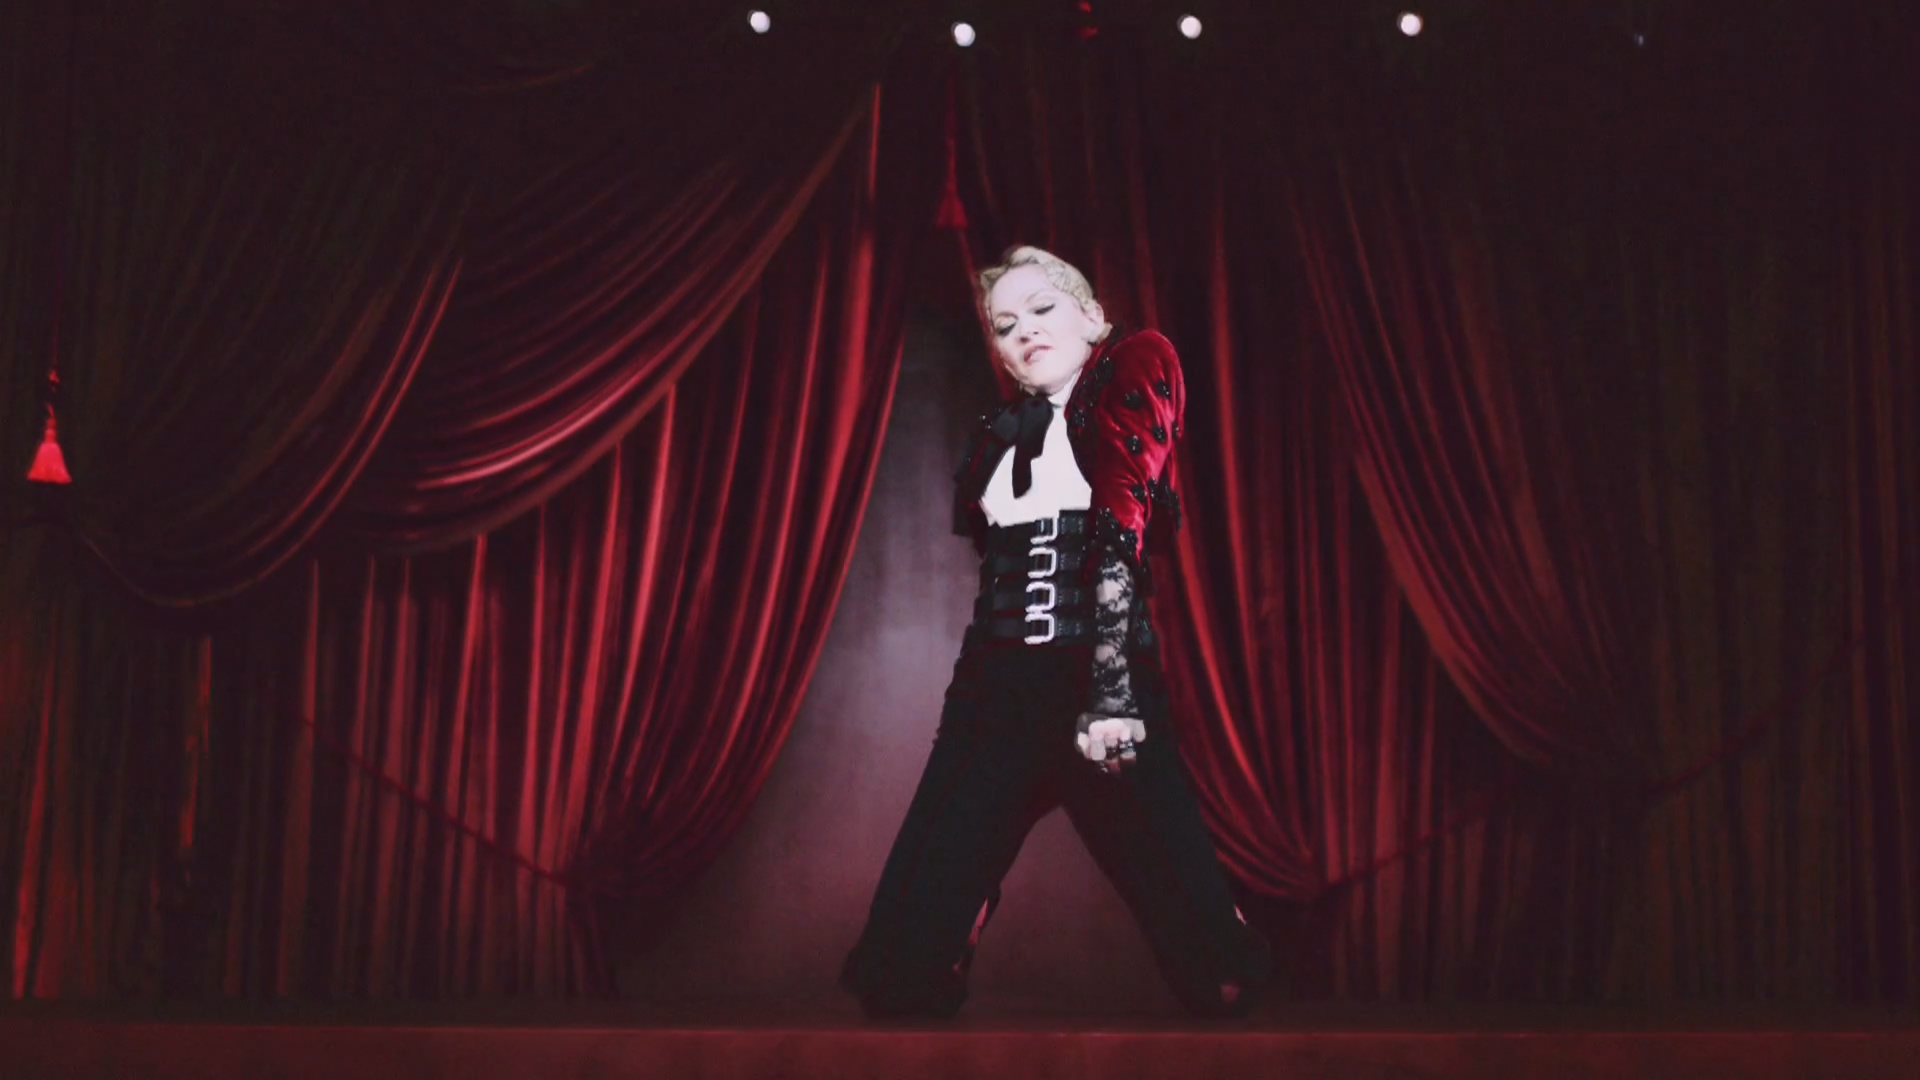 madonna living for love rebel heart video (27)